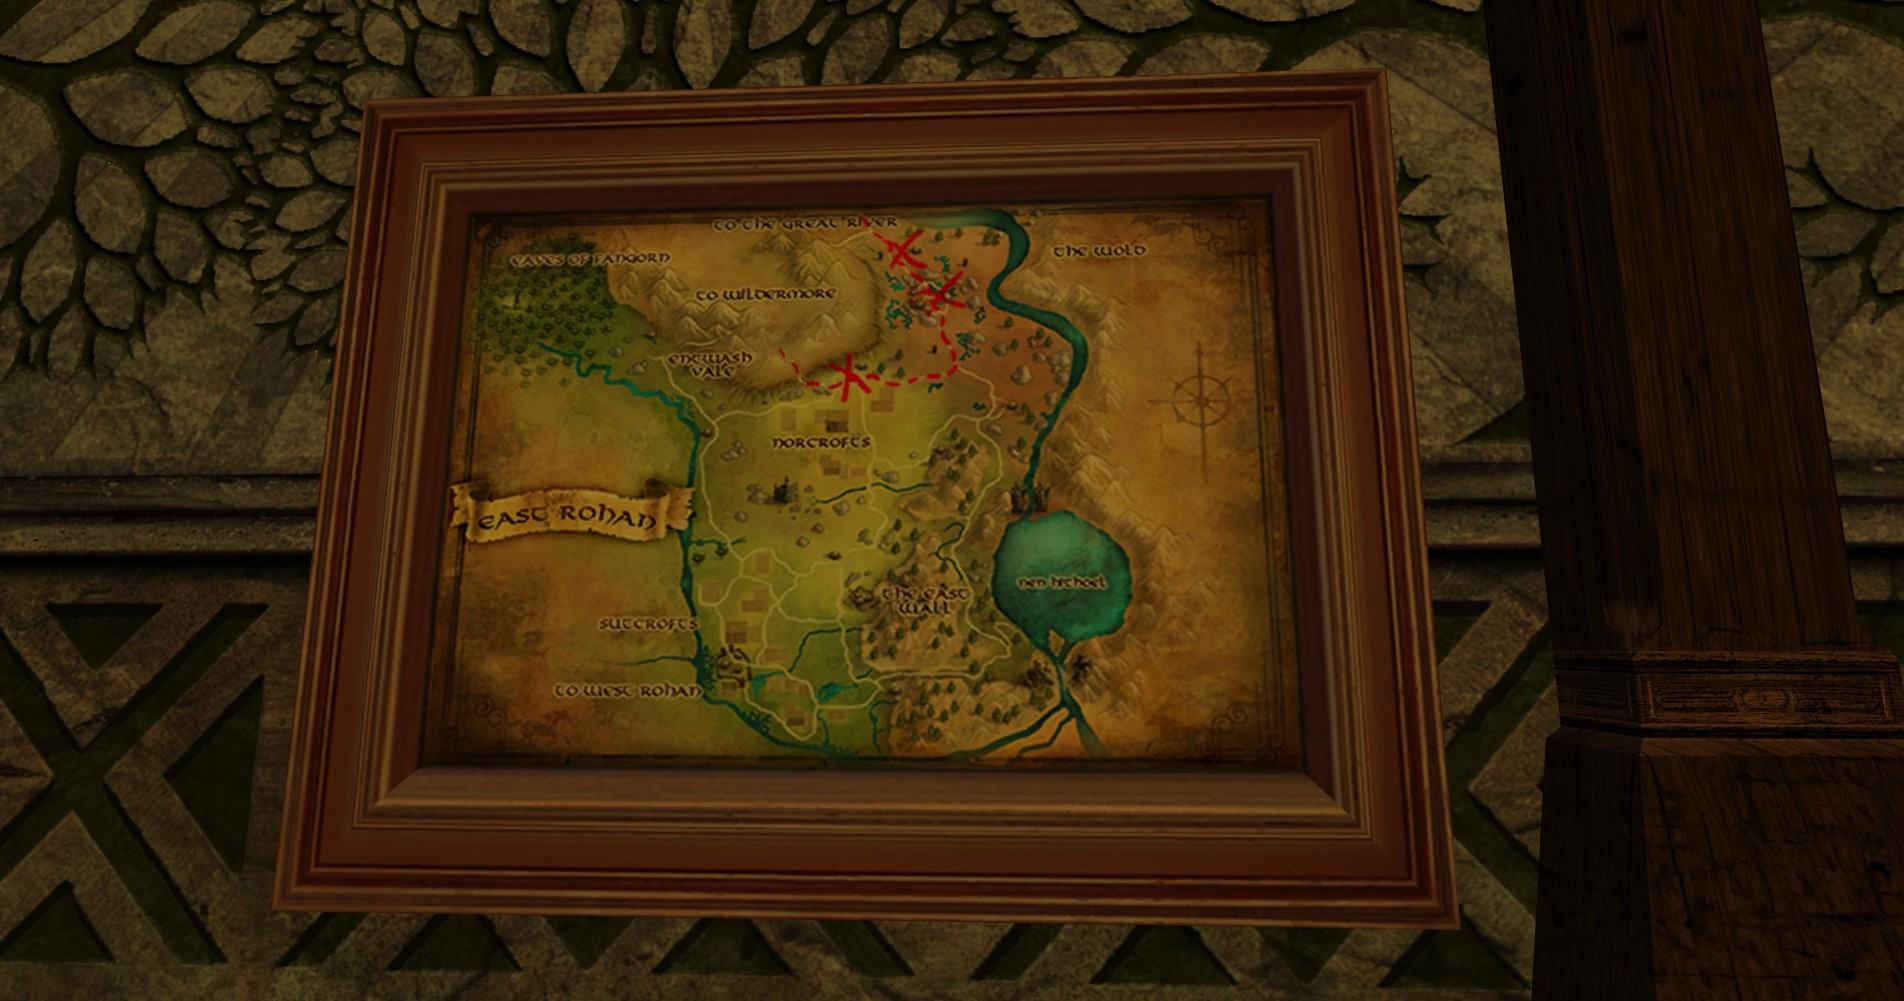 Large Map of Bingo in East Rohan